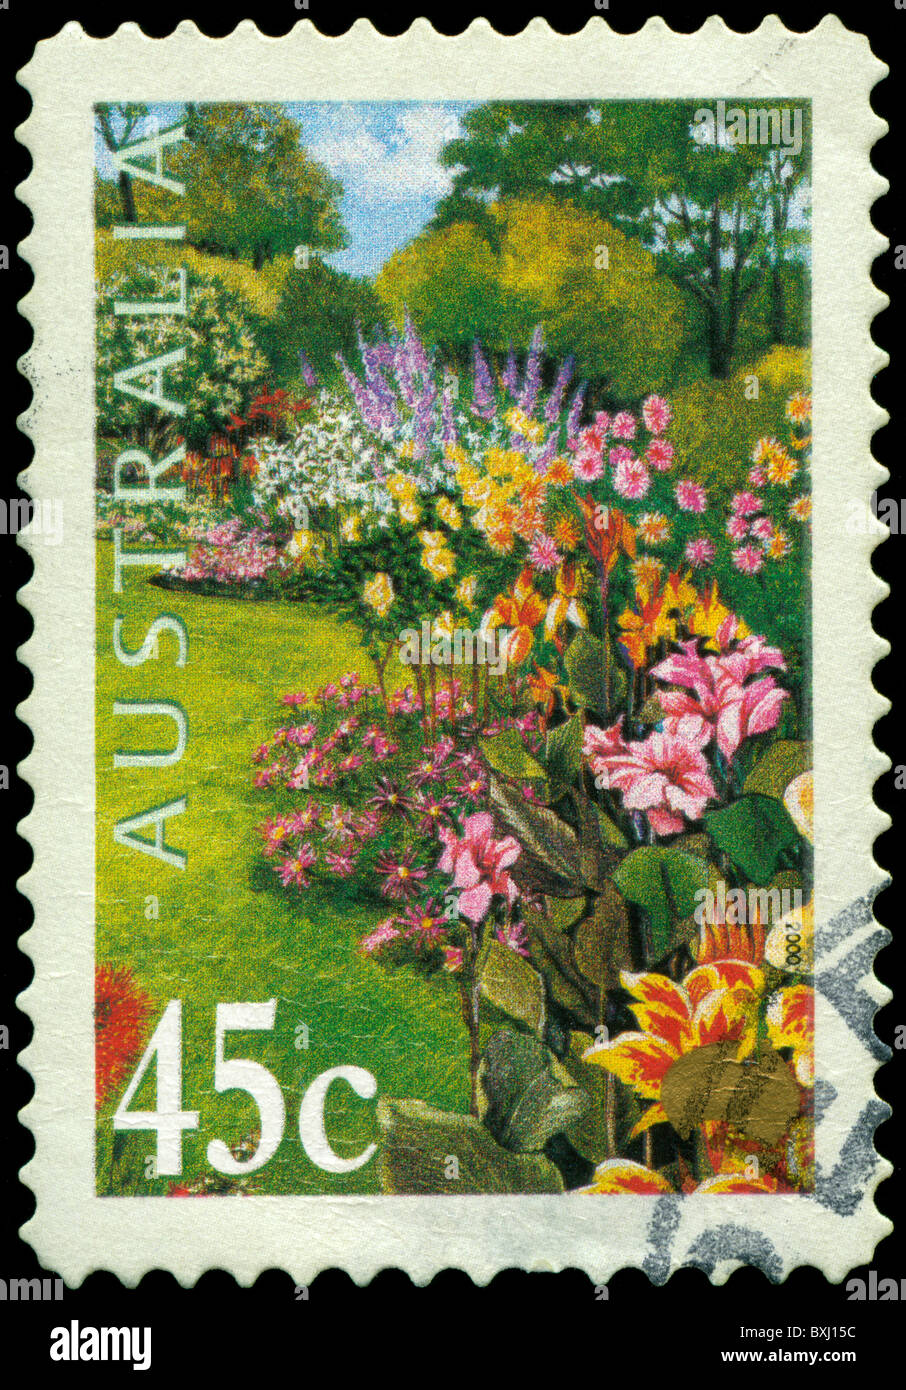 Stamp from Australia with garden motif - Stock Image